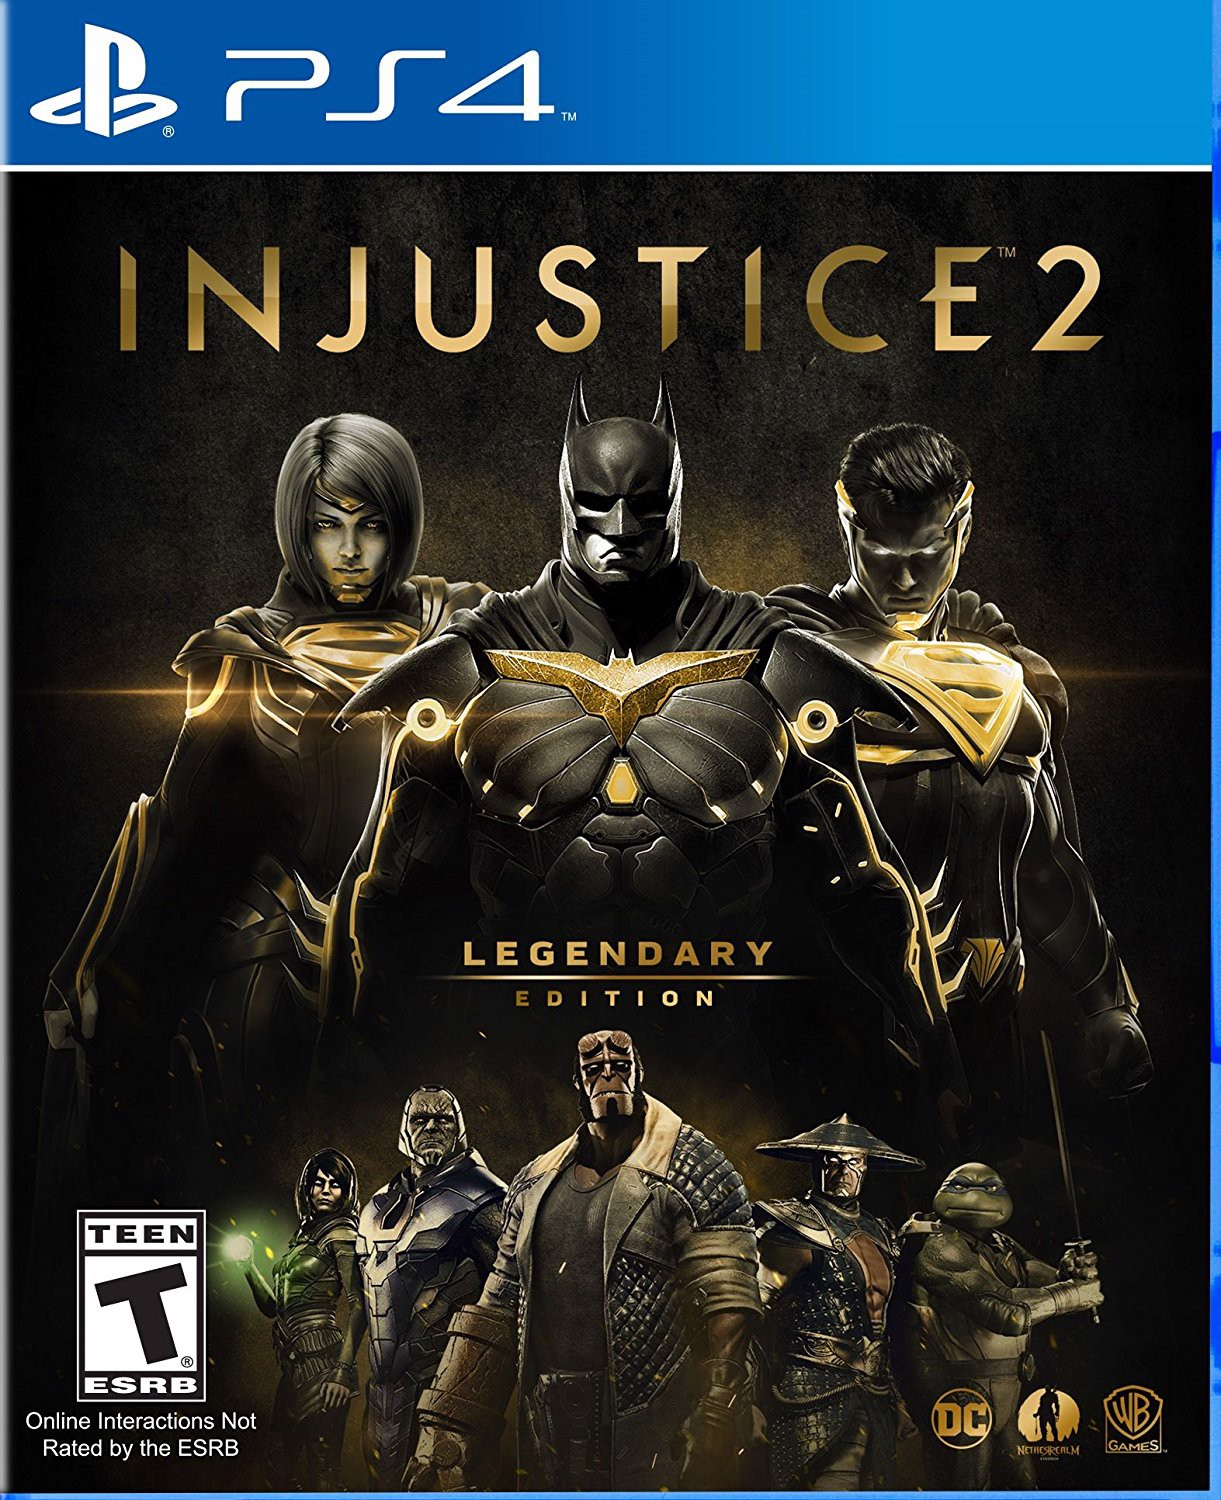 582 - Injustice 2: Legendary Edition